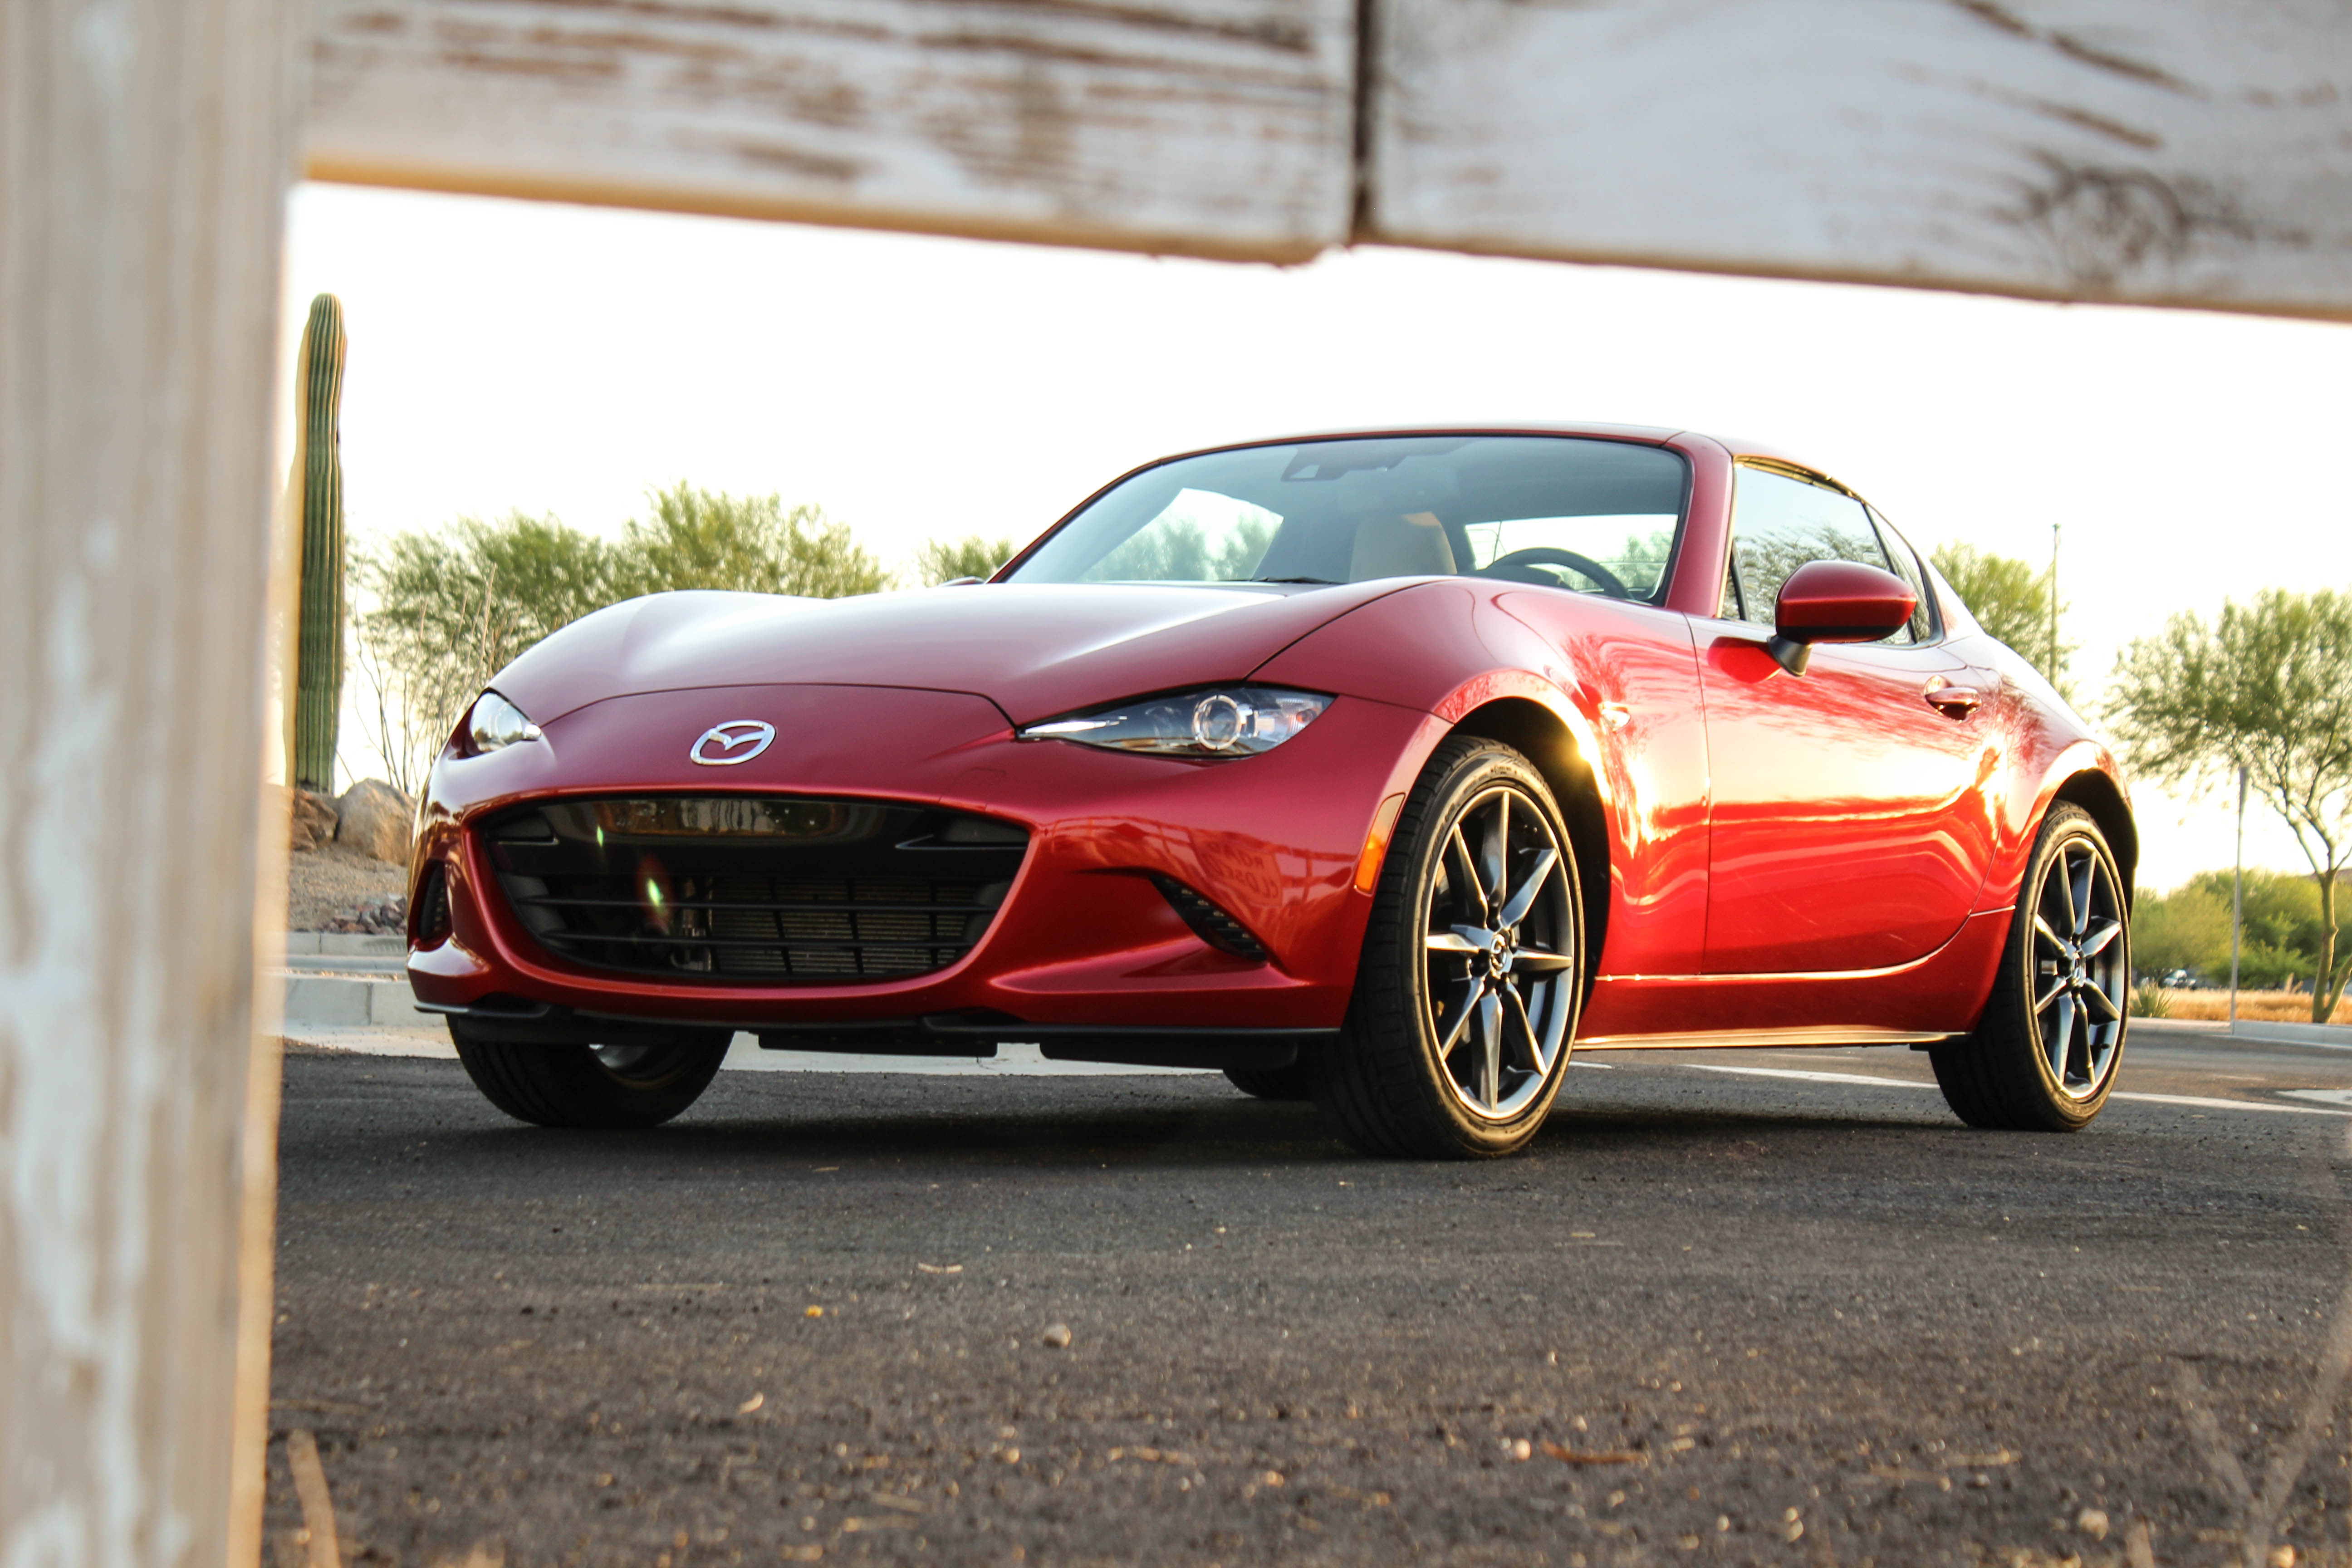 and to round develoment ideas choose mazda this cool stuff mechanics cbr touring decide not tag on too part only the you your are asking page corksport of feedback we want what aesthetics blog utah for performance